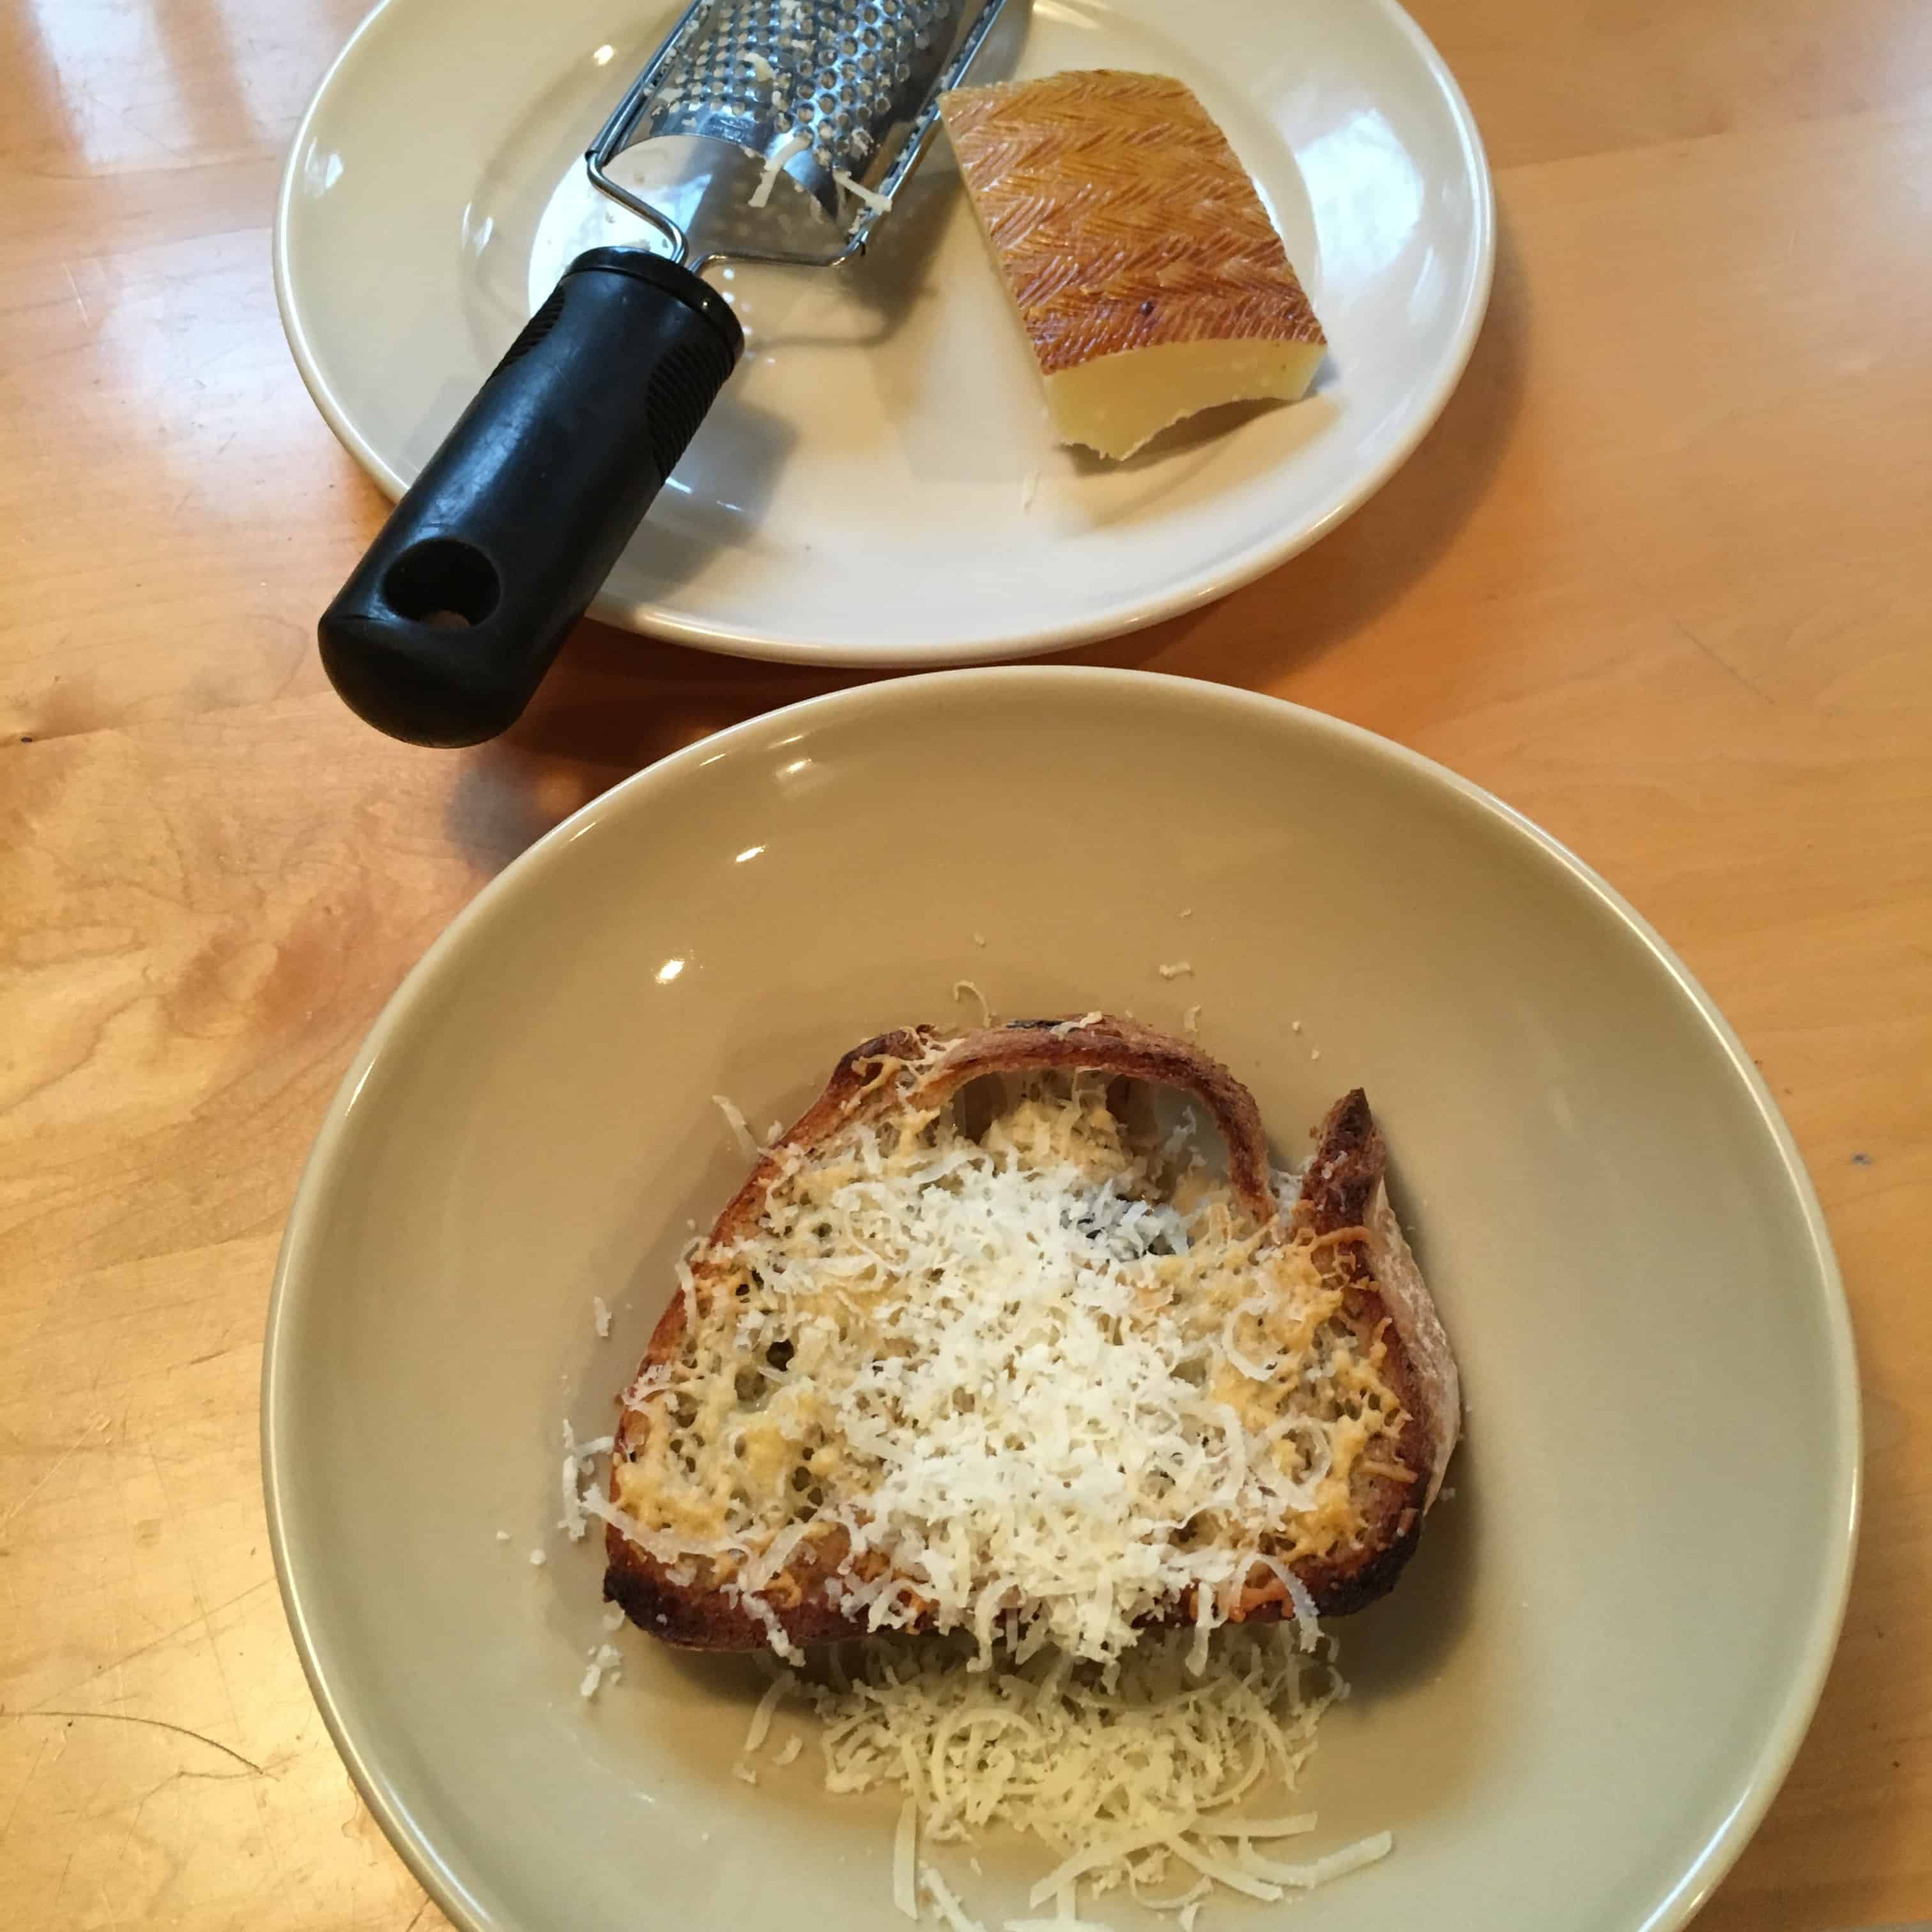 Preparing the garlic rubbed toasted bread with grated Parmesan cheese for the soup to come.